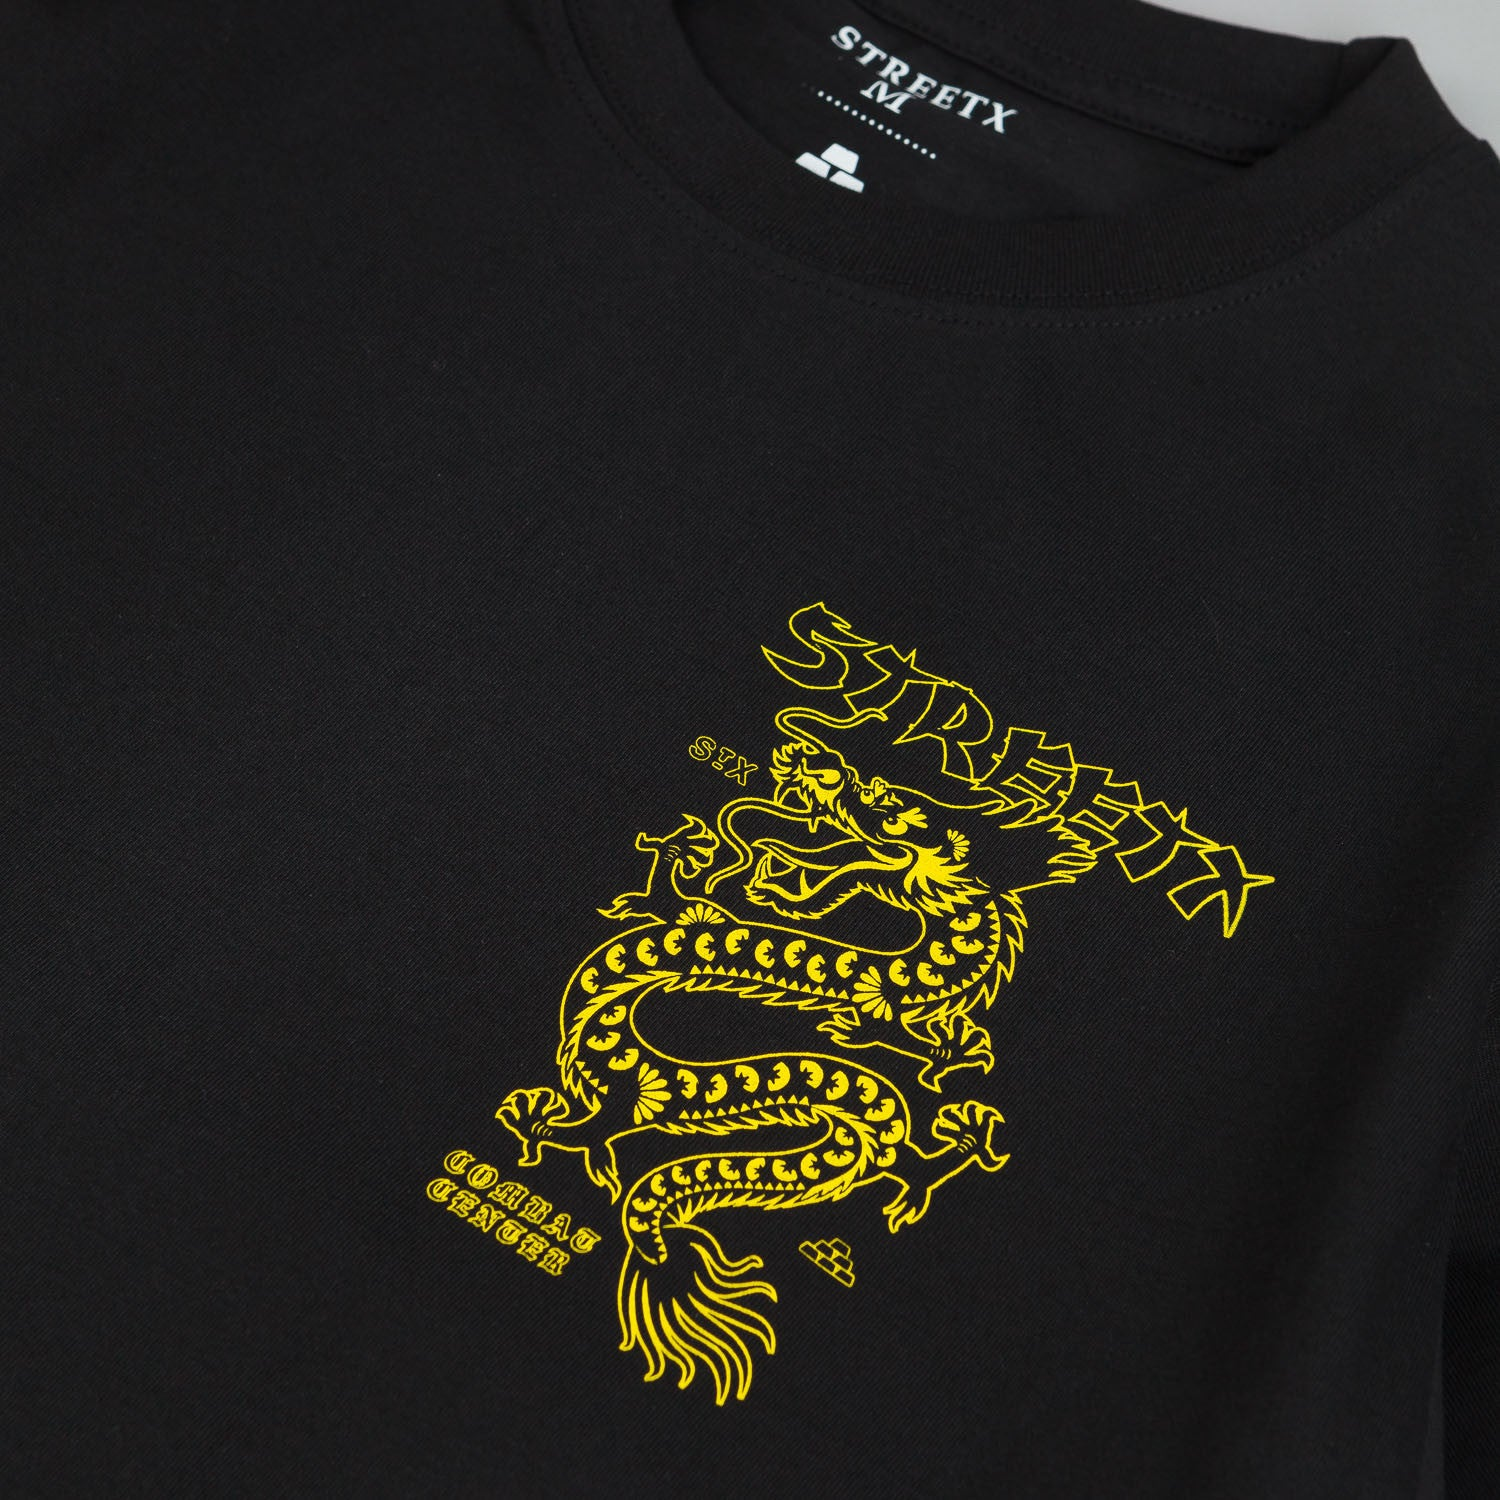 StreetX China Long Sleeve T-Shirt - Black